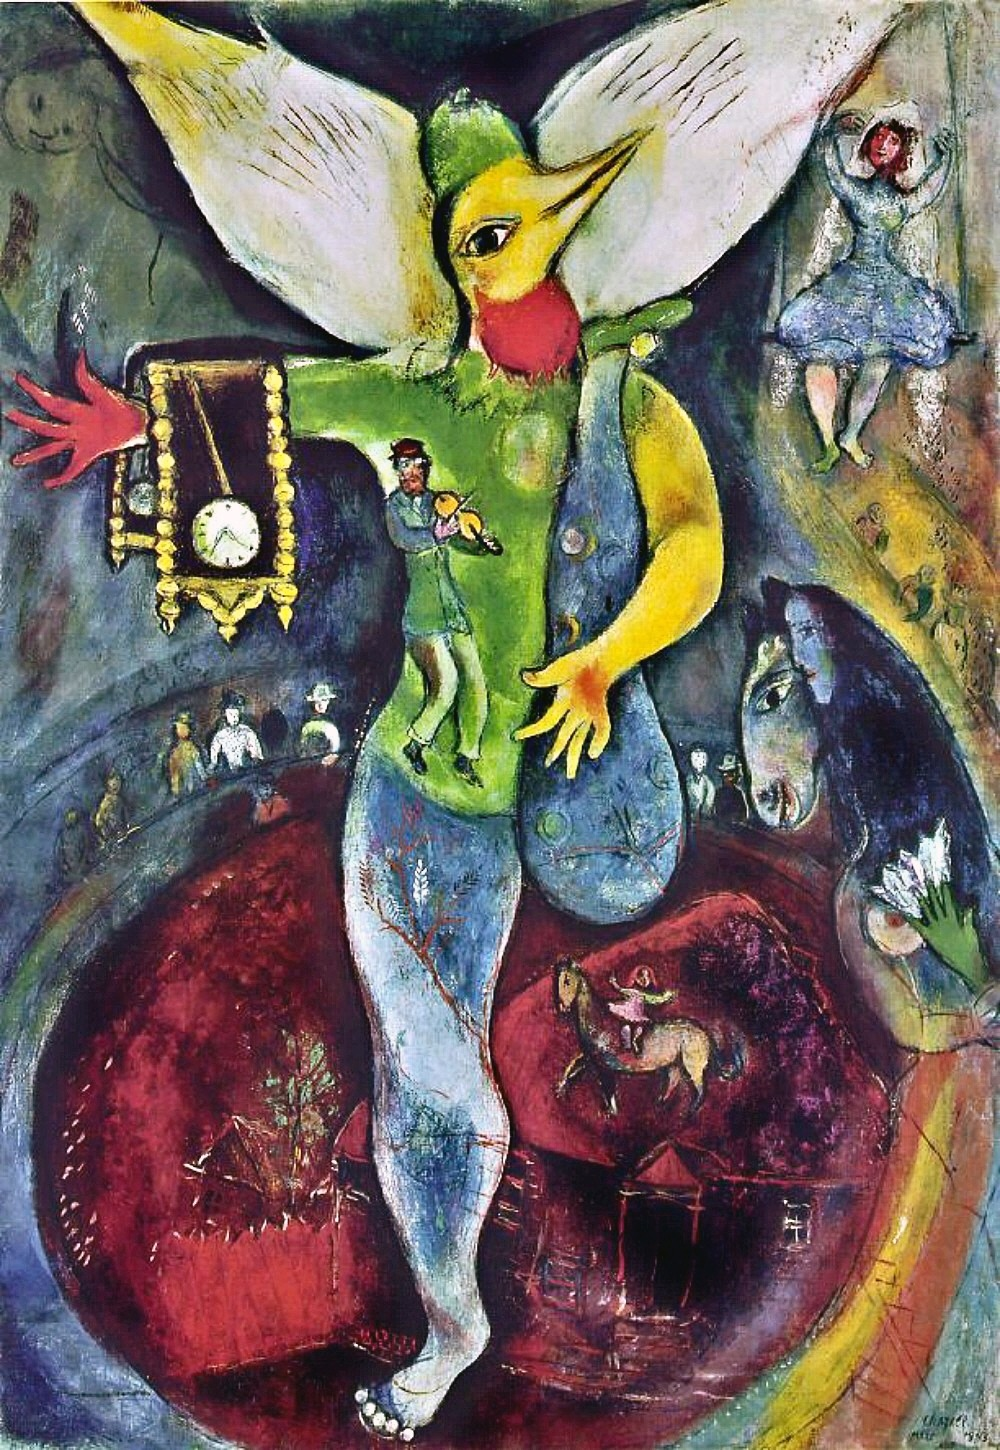 marc-chagall-the-juggler-1943